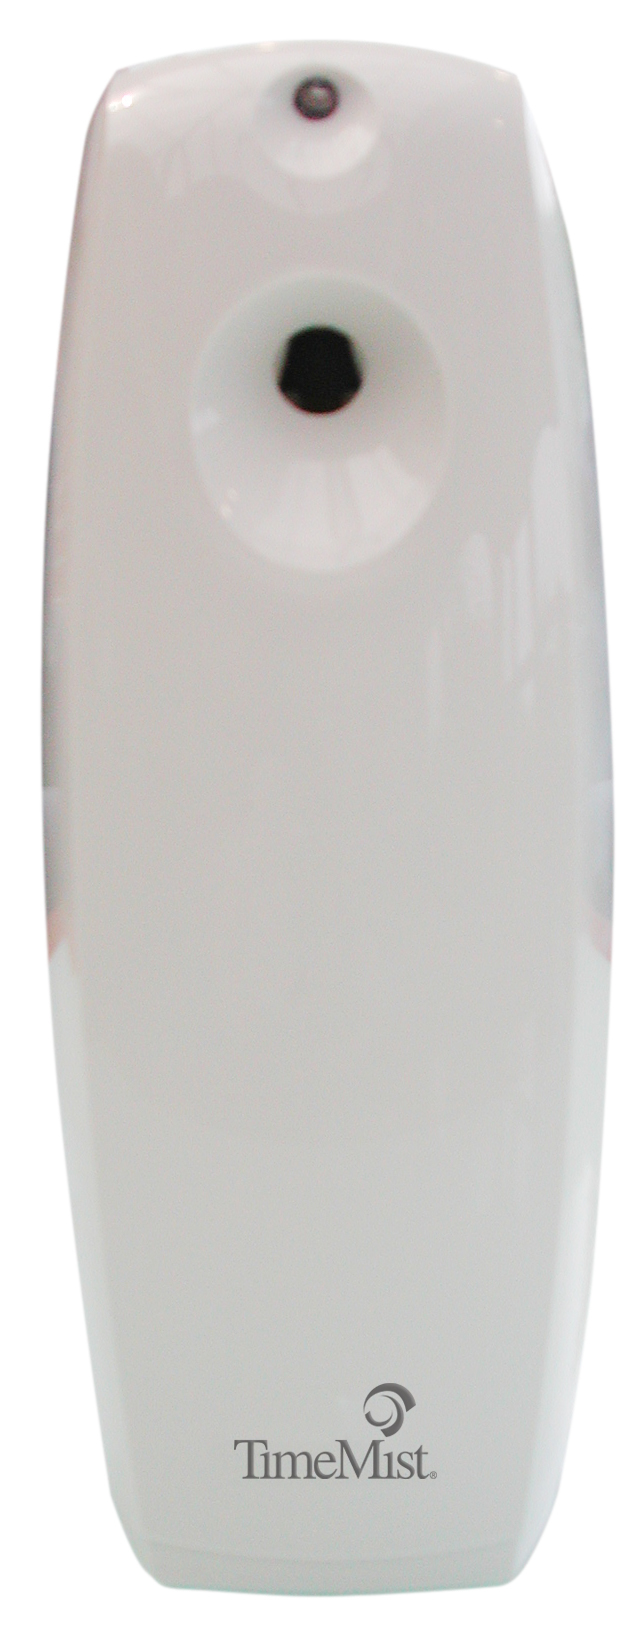 TIMEMIST SETTINGS DISPENSER - WHITE-$32. SPRING SALES PRICE REDUCED TO $19. !!!!!